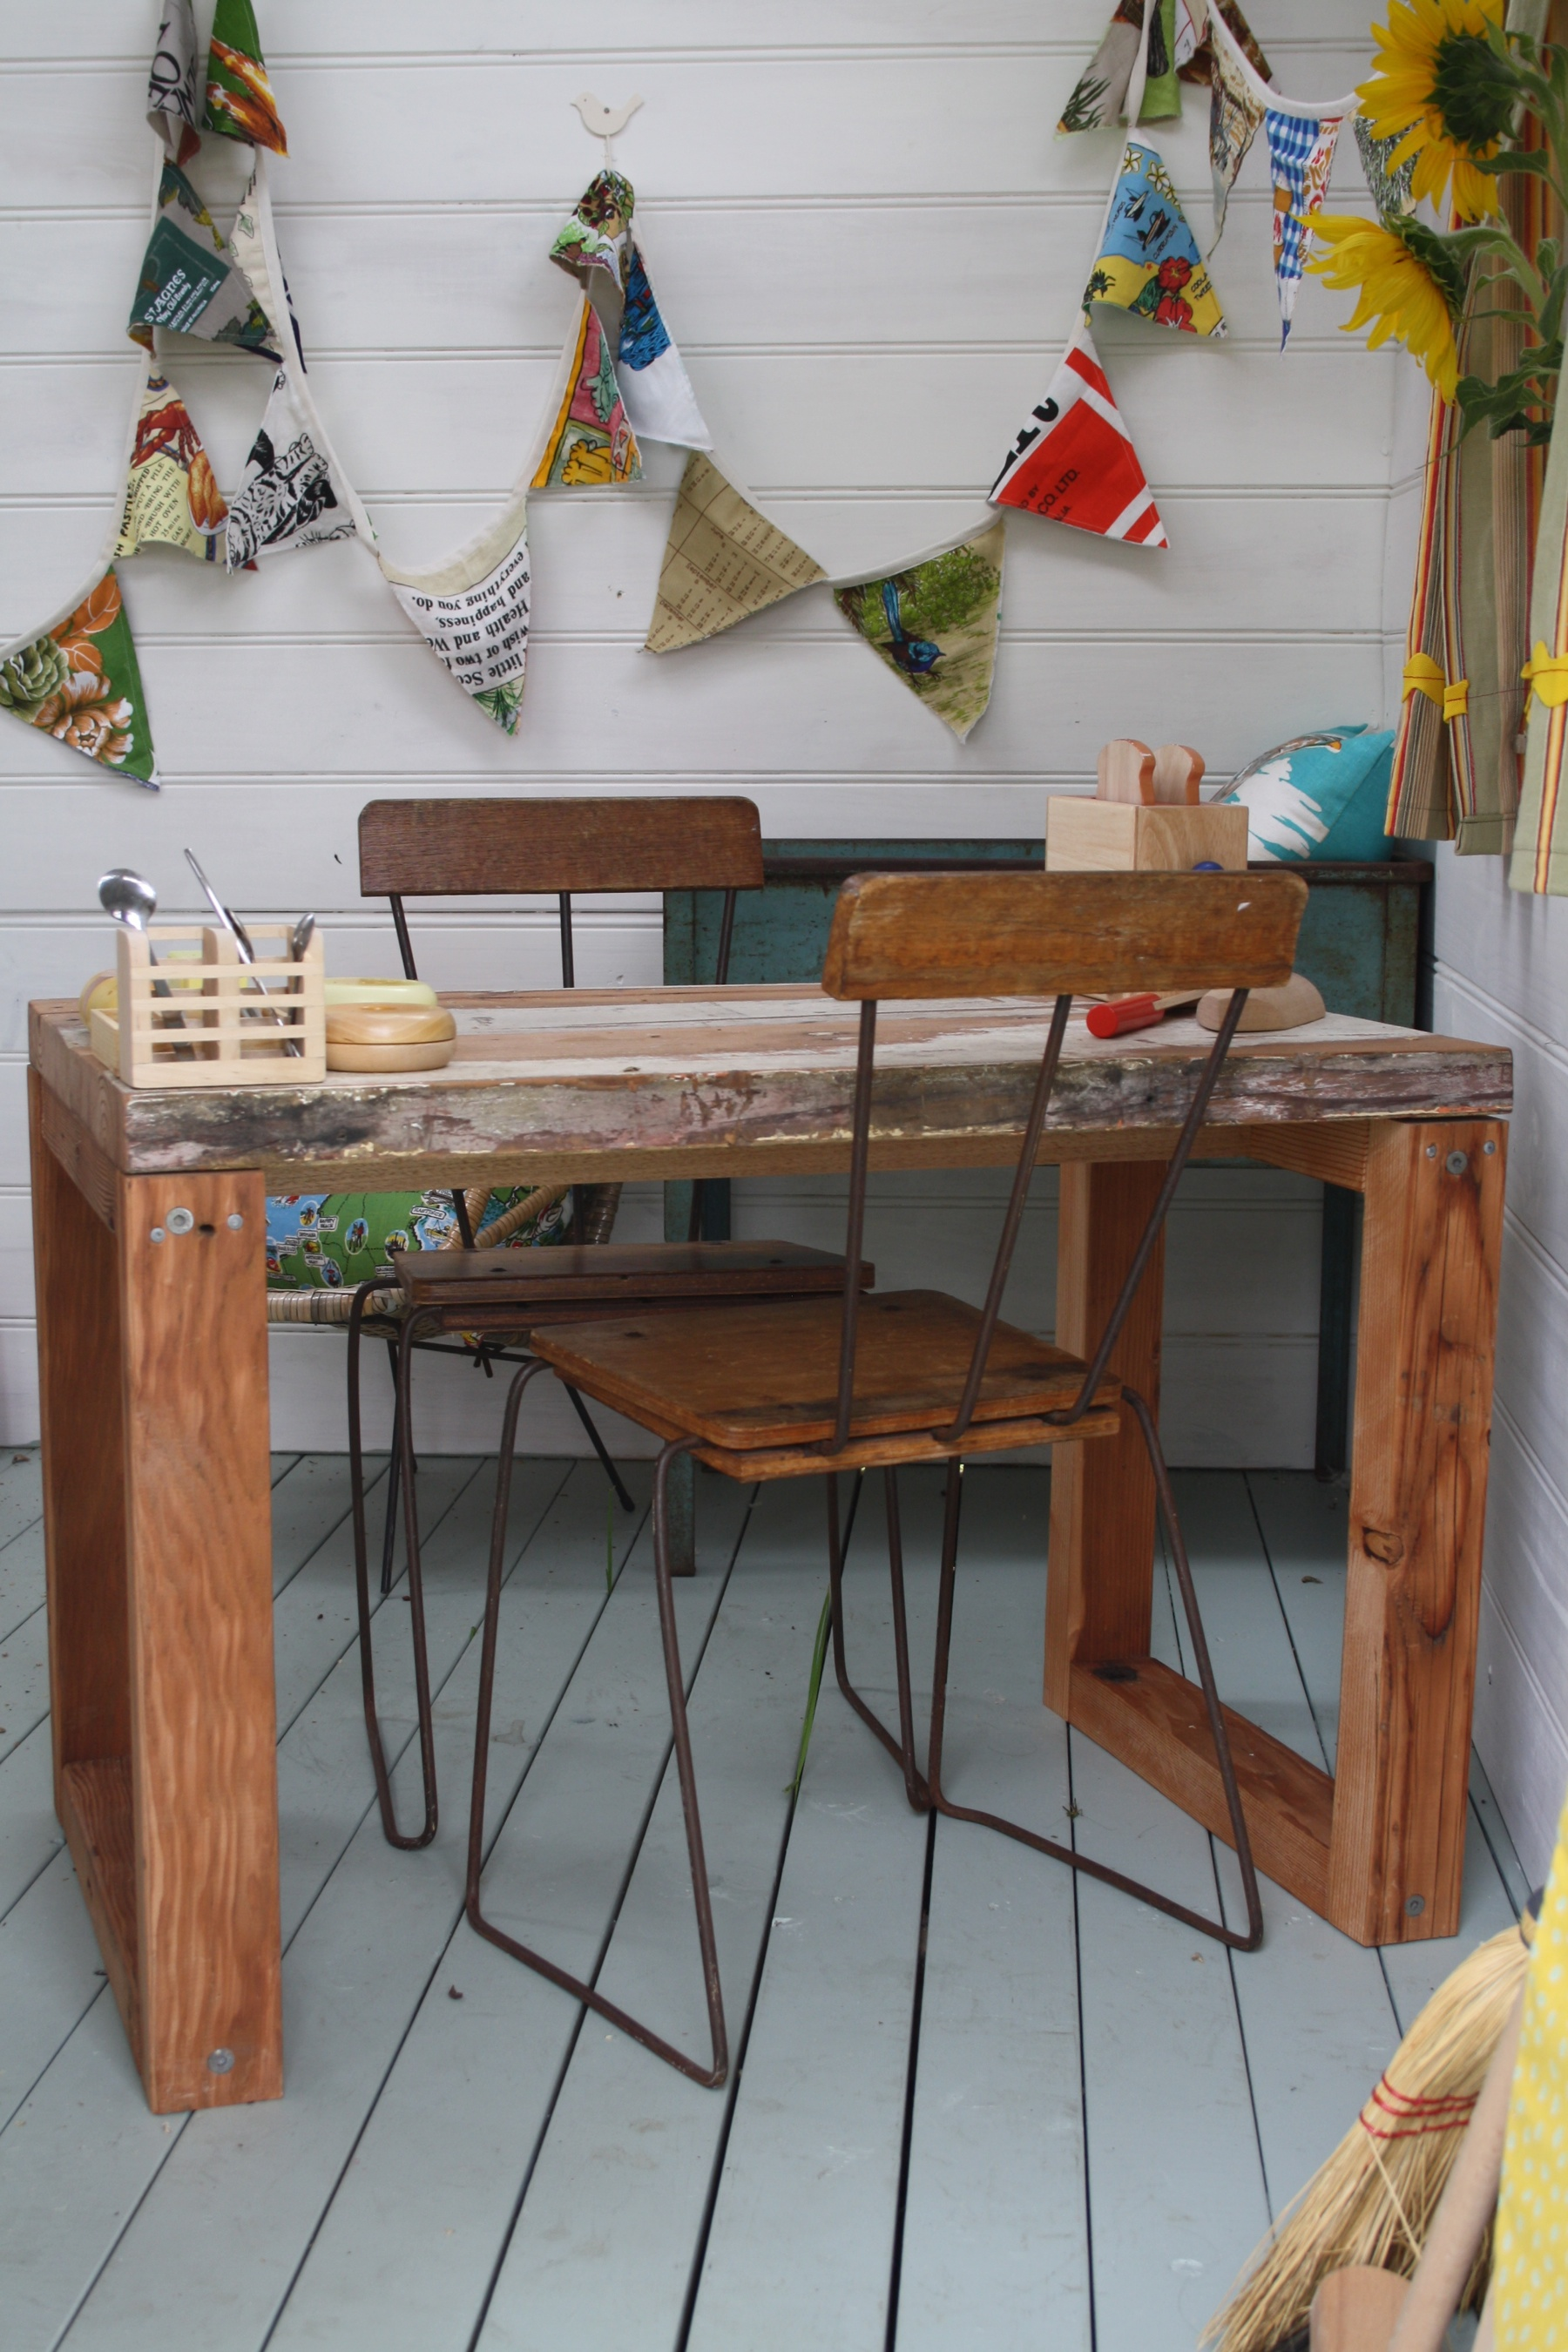 cubby house furniture. Cubby House Table Front View Furniture